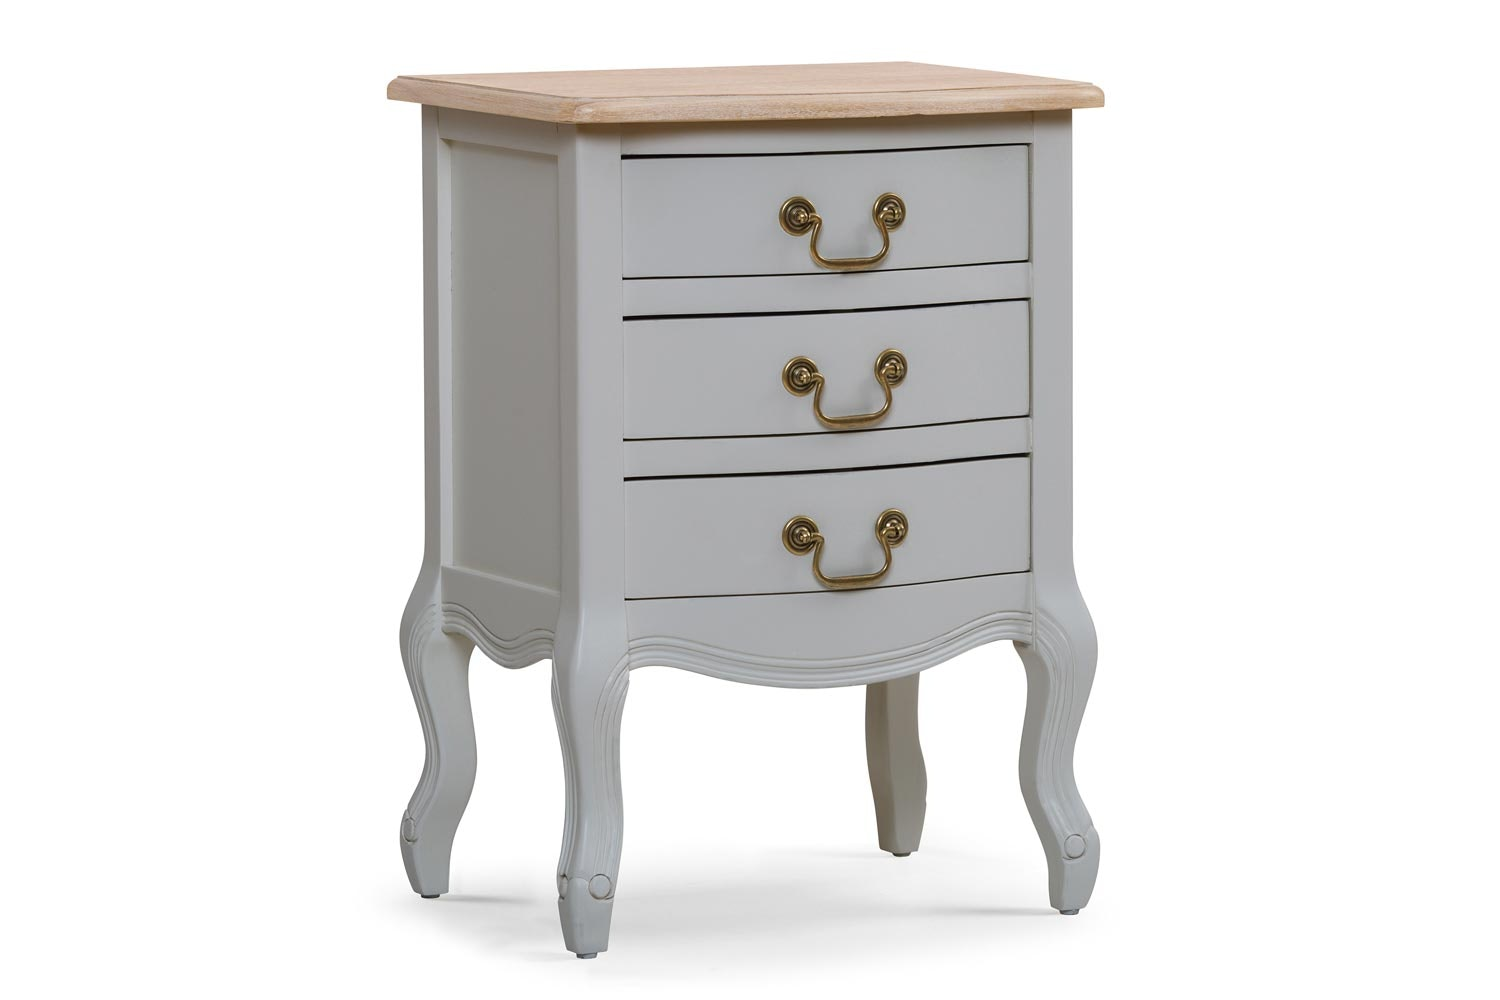 Bouvard 3 Drawer Bedside Locker | Colourtrend